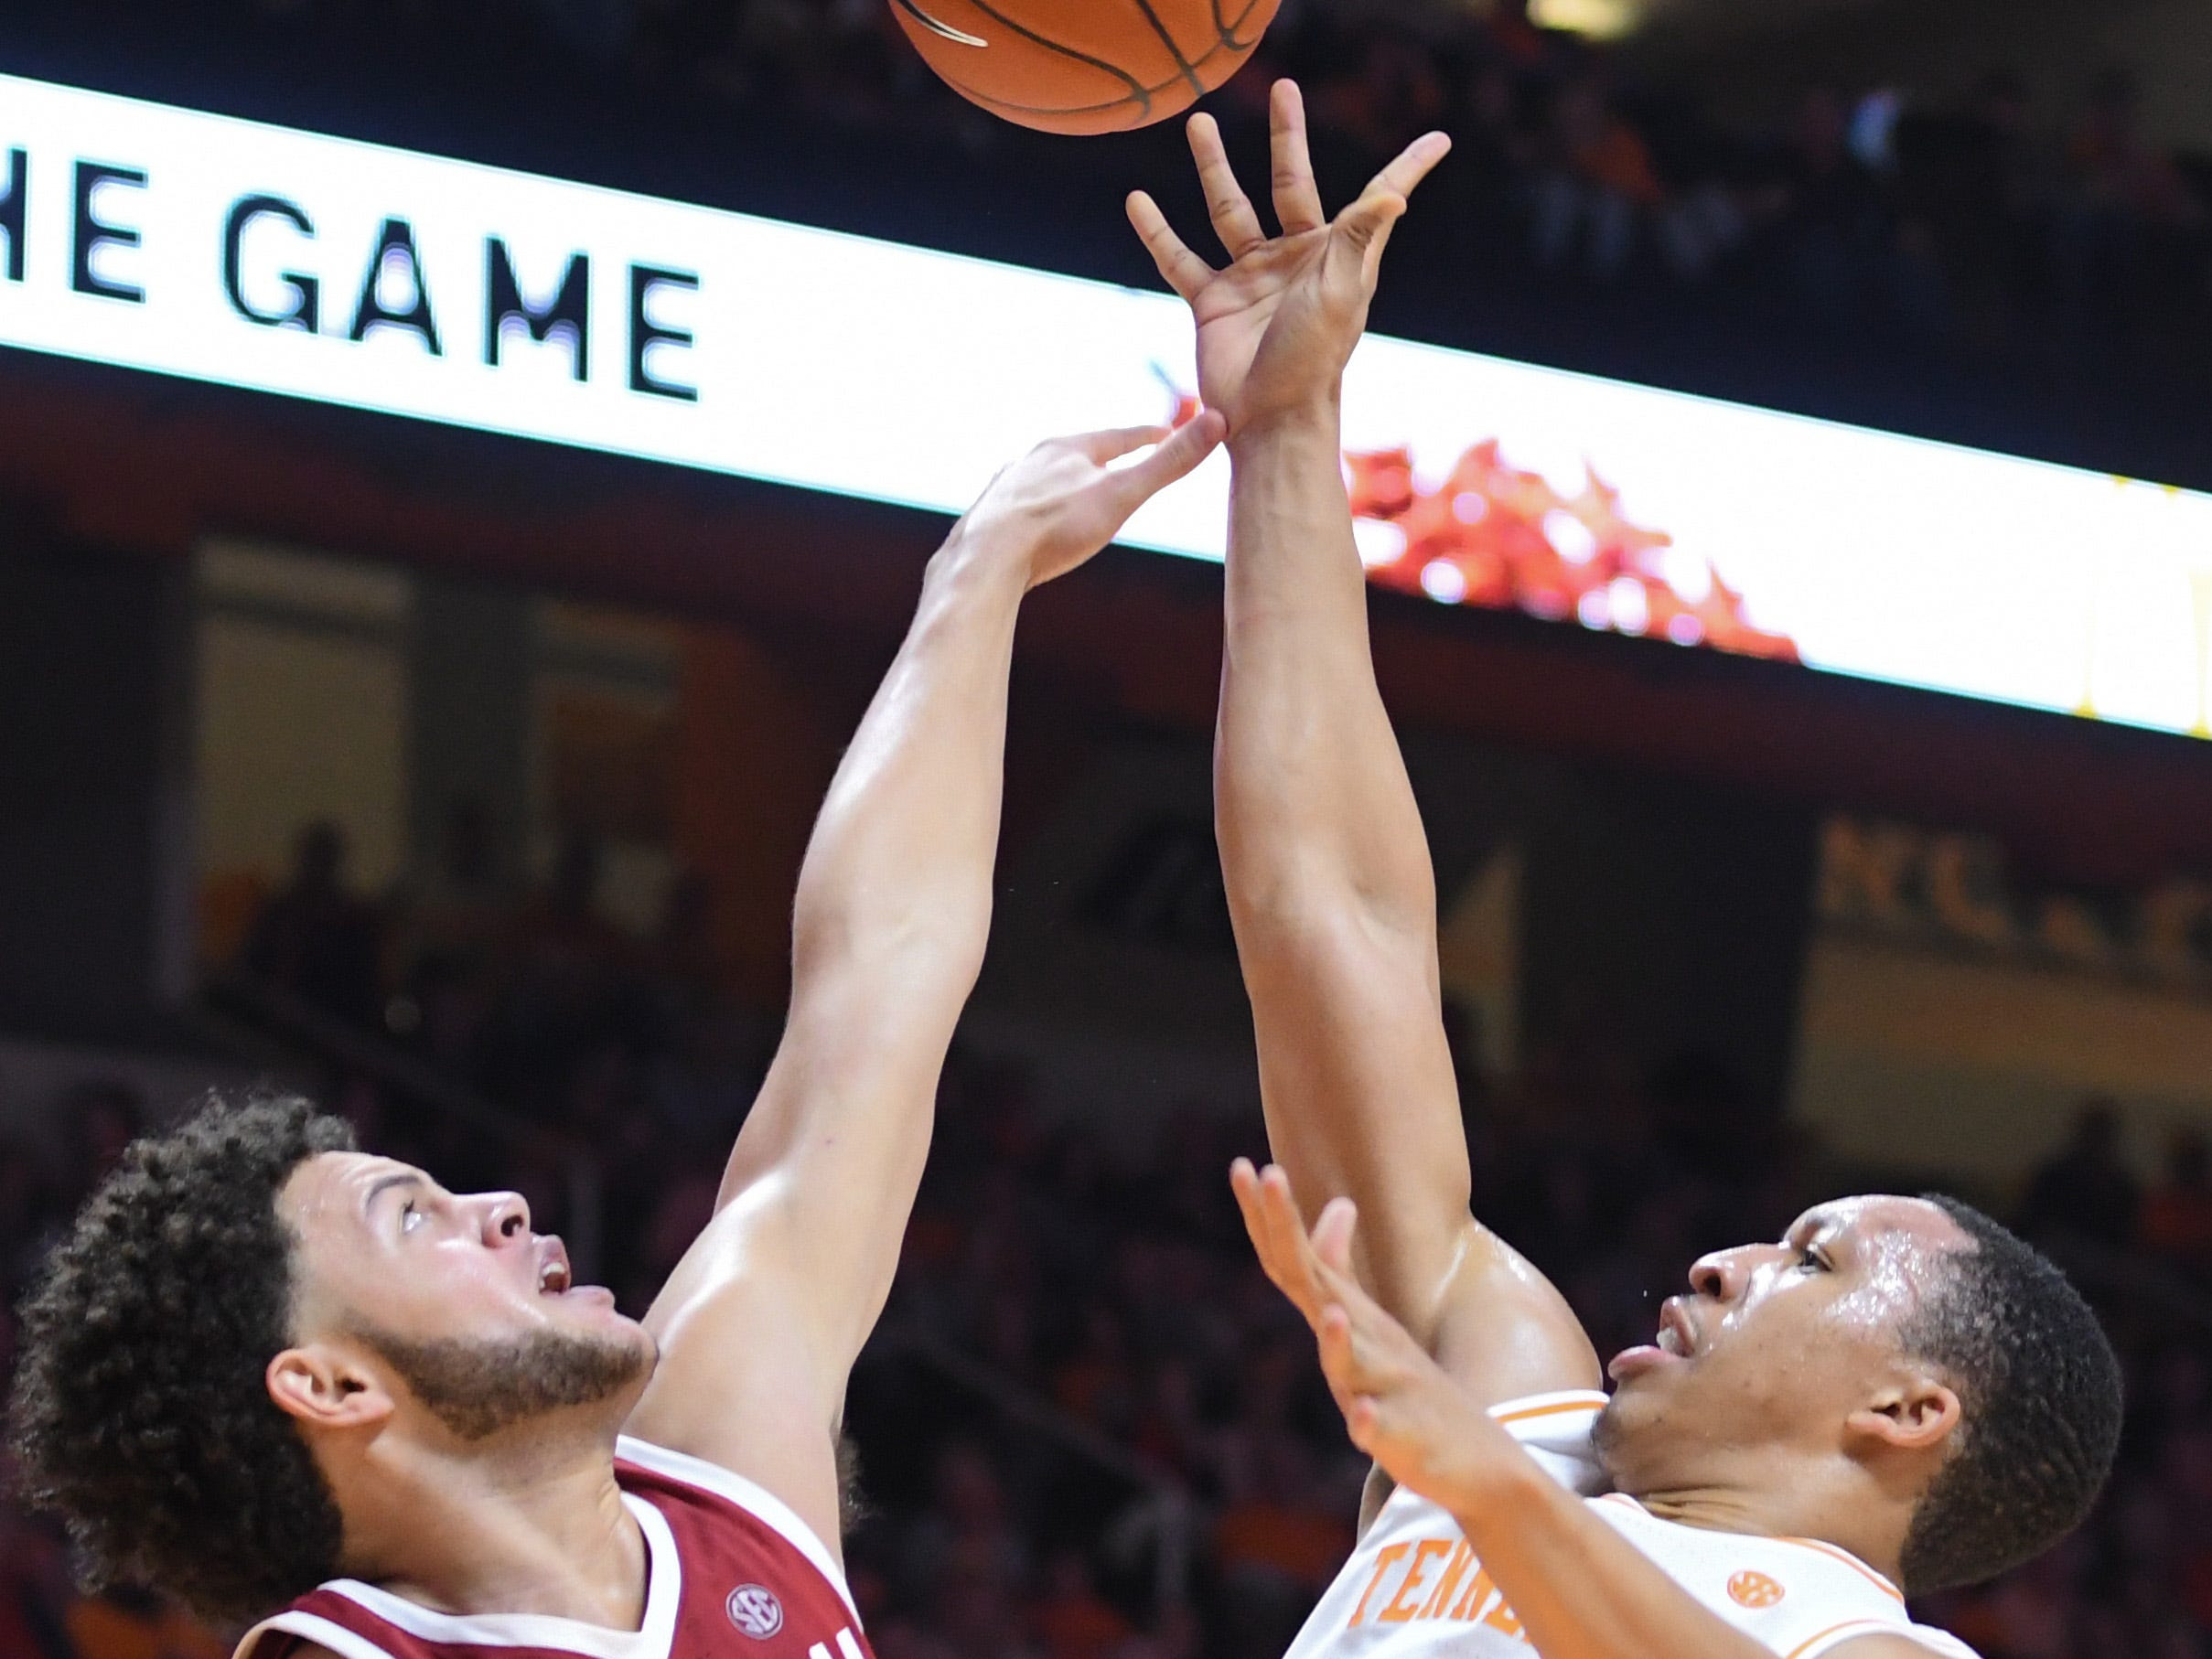 Tennessee Volunteers forward Grant Williams (2) shoots the ball against Alabama Crimson Tide forward Alex Reese (3) during the second half at Thompson-Boling Arena. Tennessee won 71 to 68.